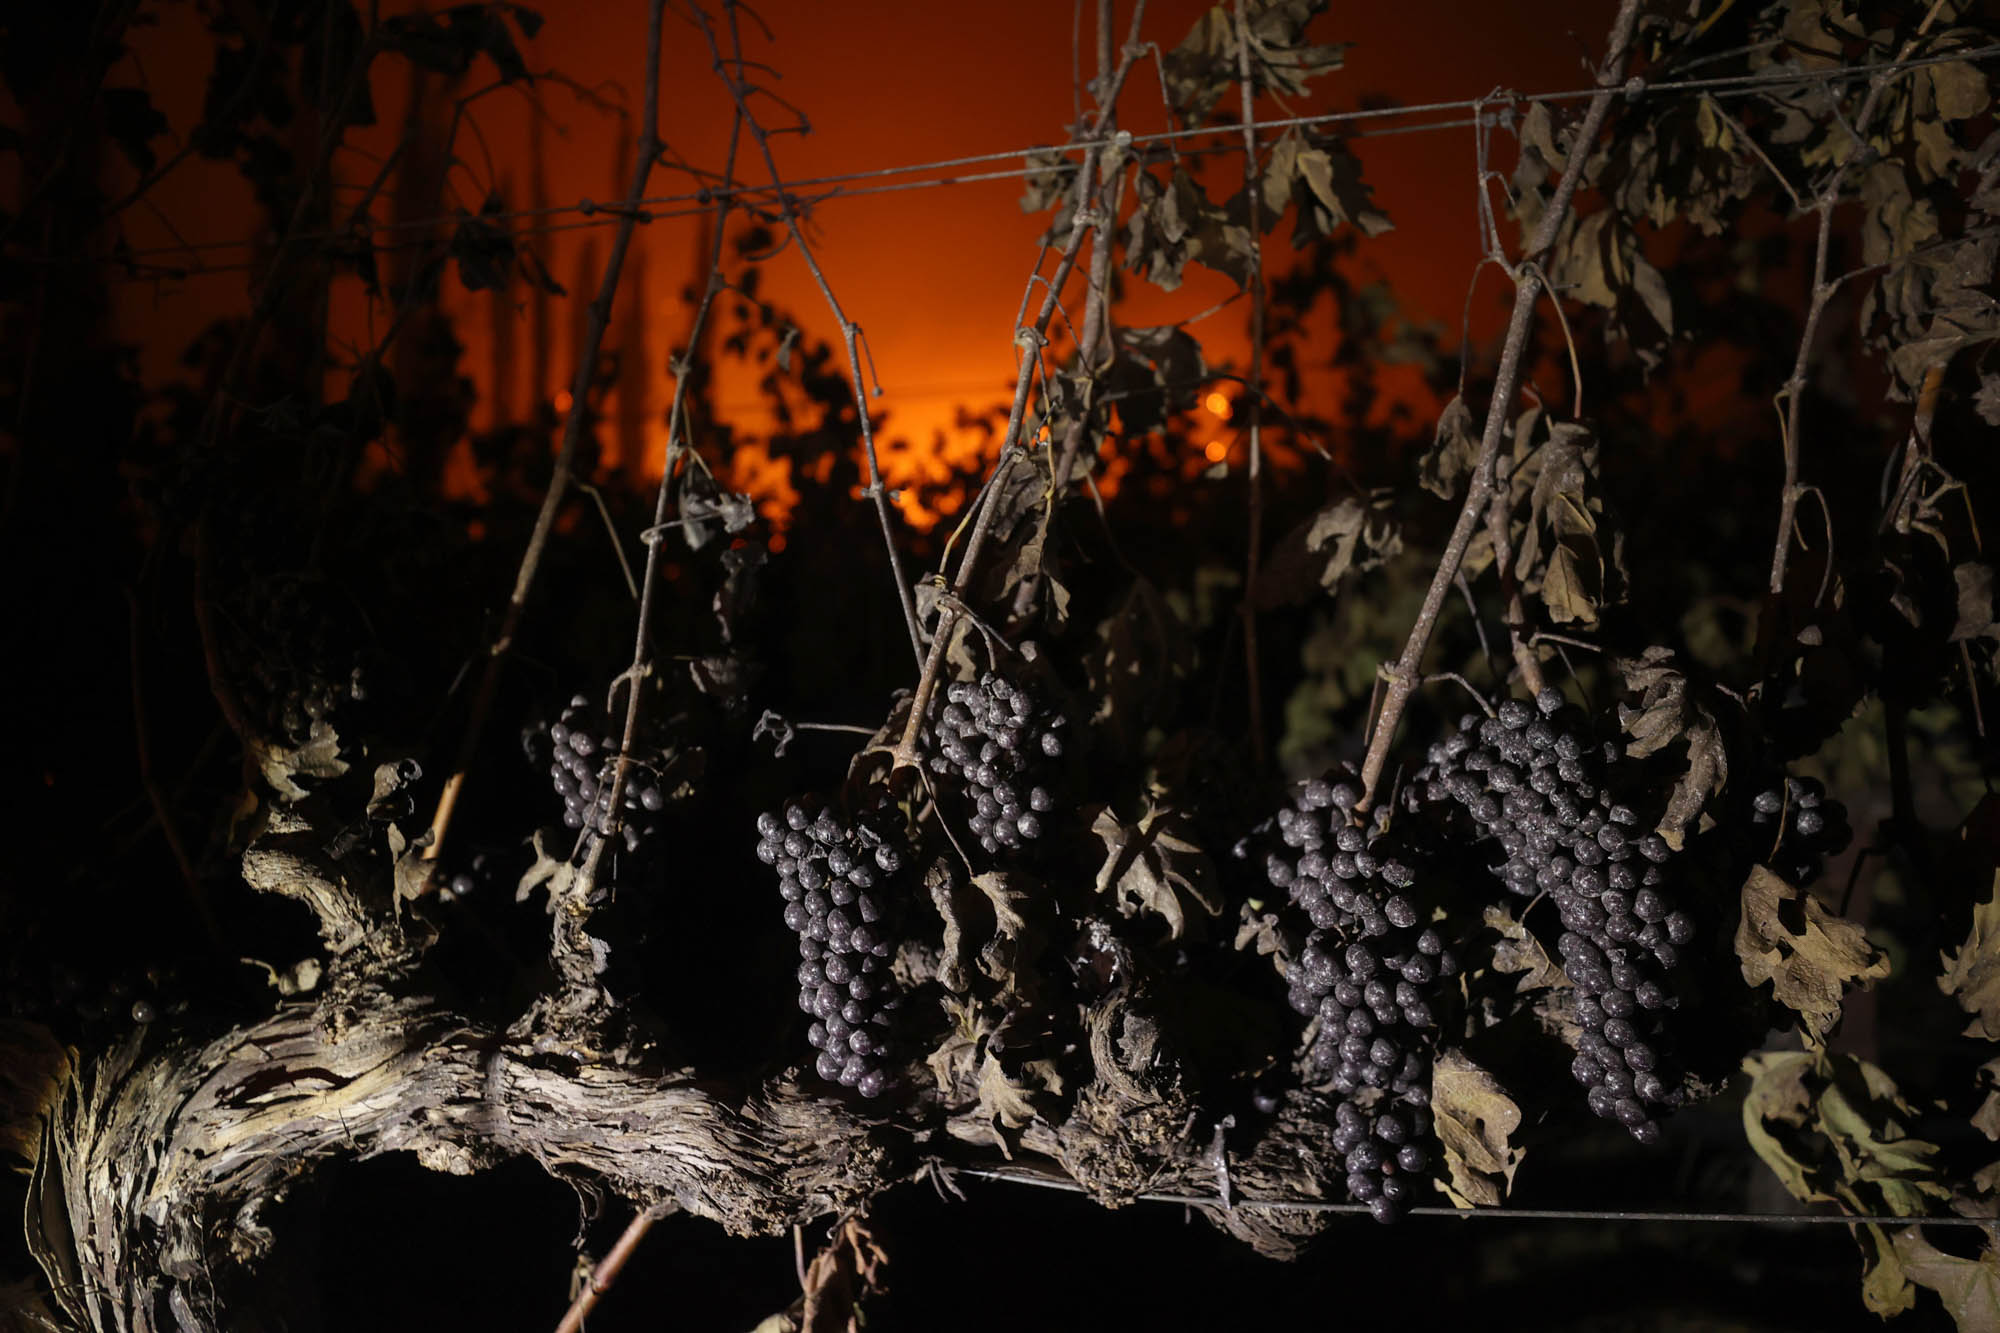 Glass Fire Burns Through Napa Valley As Hot And Dry Conditions Return To Northern California